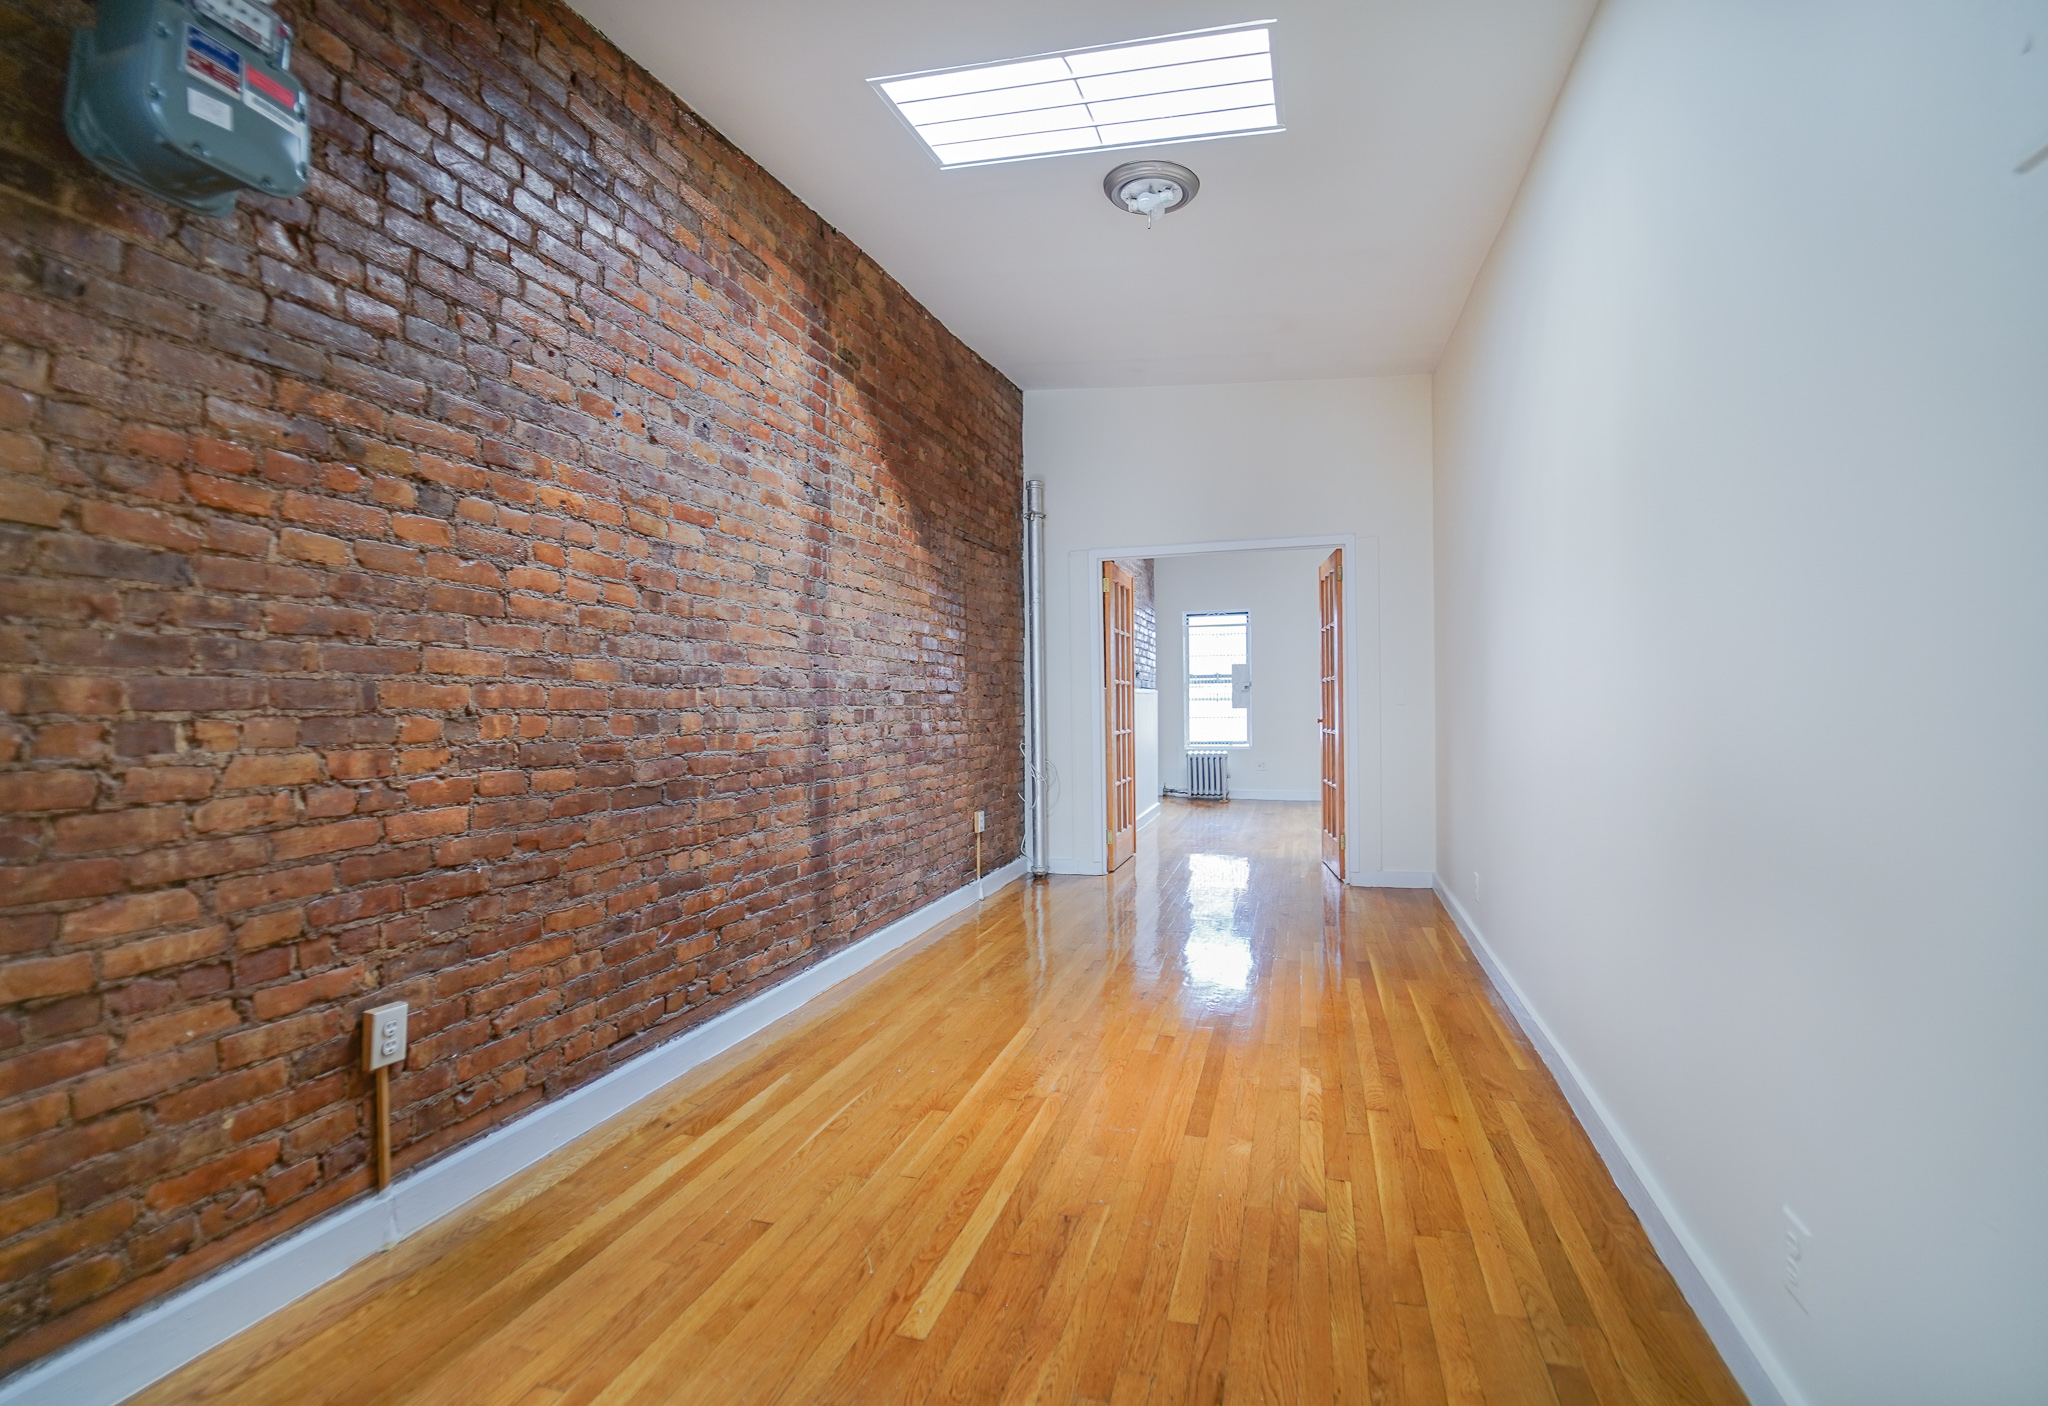 170 Avenue B #5N - Super Bright One Bedroom in East Village! Enjoy Two skylights, large window kitchen, king size bedroom and large living space. Located on the 5th floor of a walk up for immediate move in.Rent: $2,795 /monthTerms: 12 - 12 MonthsAvailable: Immediate